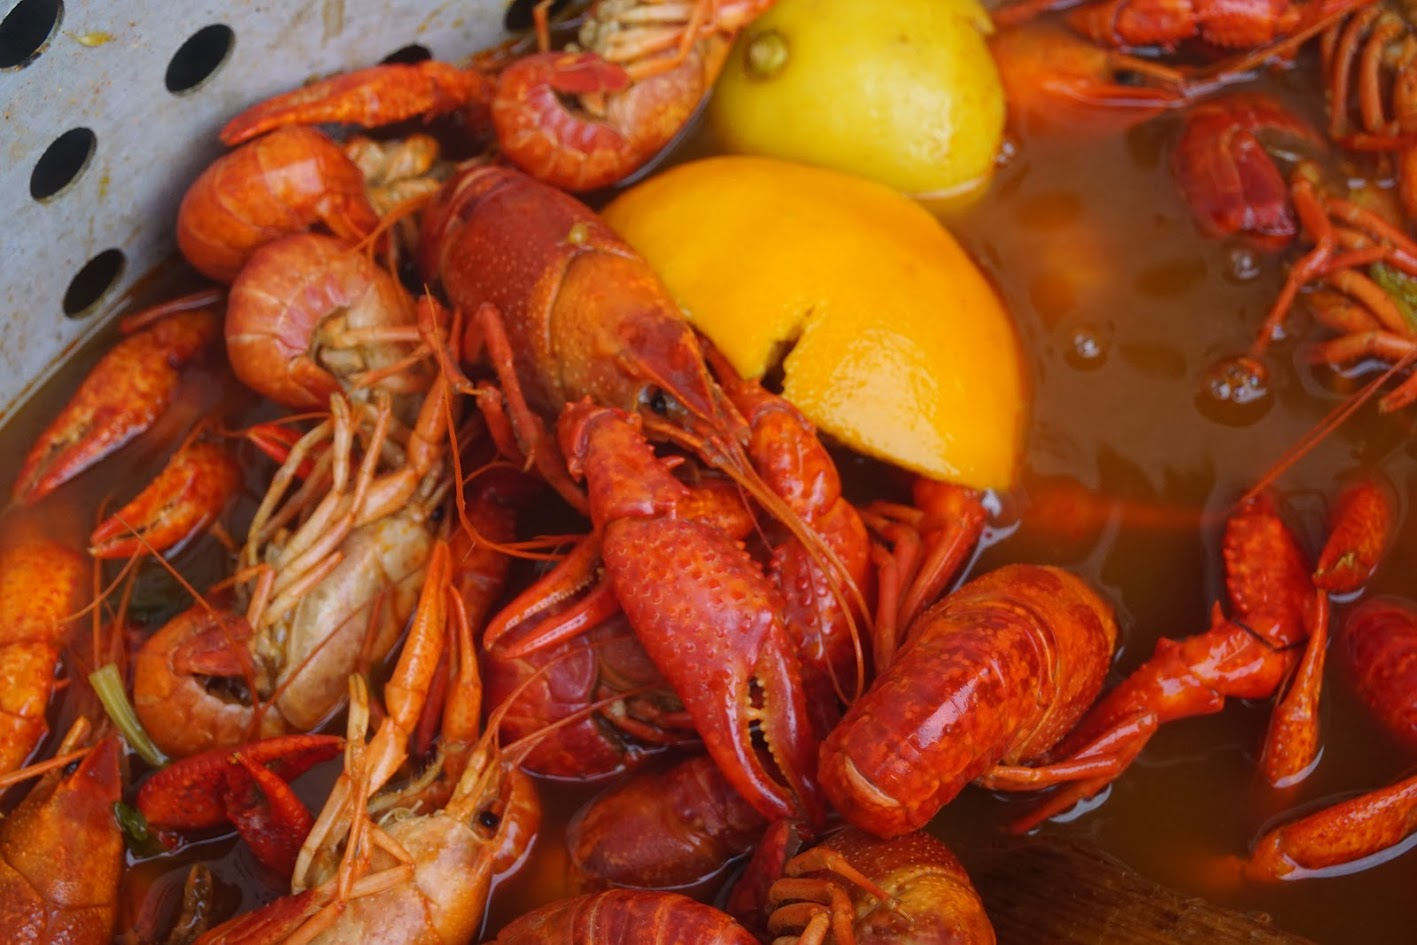 A Crawfish Boil Starts With A Lot Of Seasonings, Fruits, And Vegetables  The Chef Or Artist Cooking The Crawfish Will Bring Their Own Flair To The  Pot